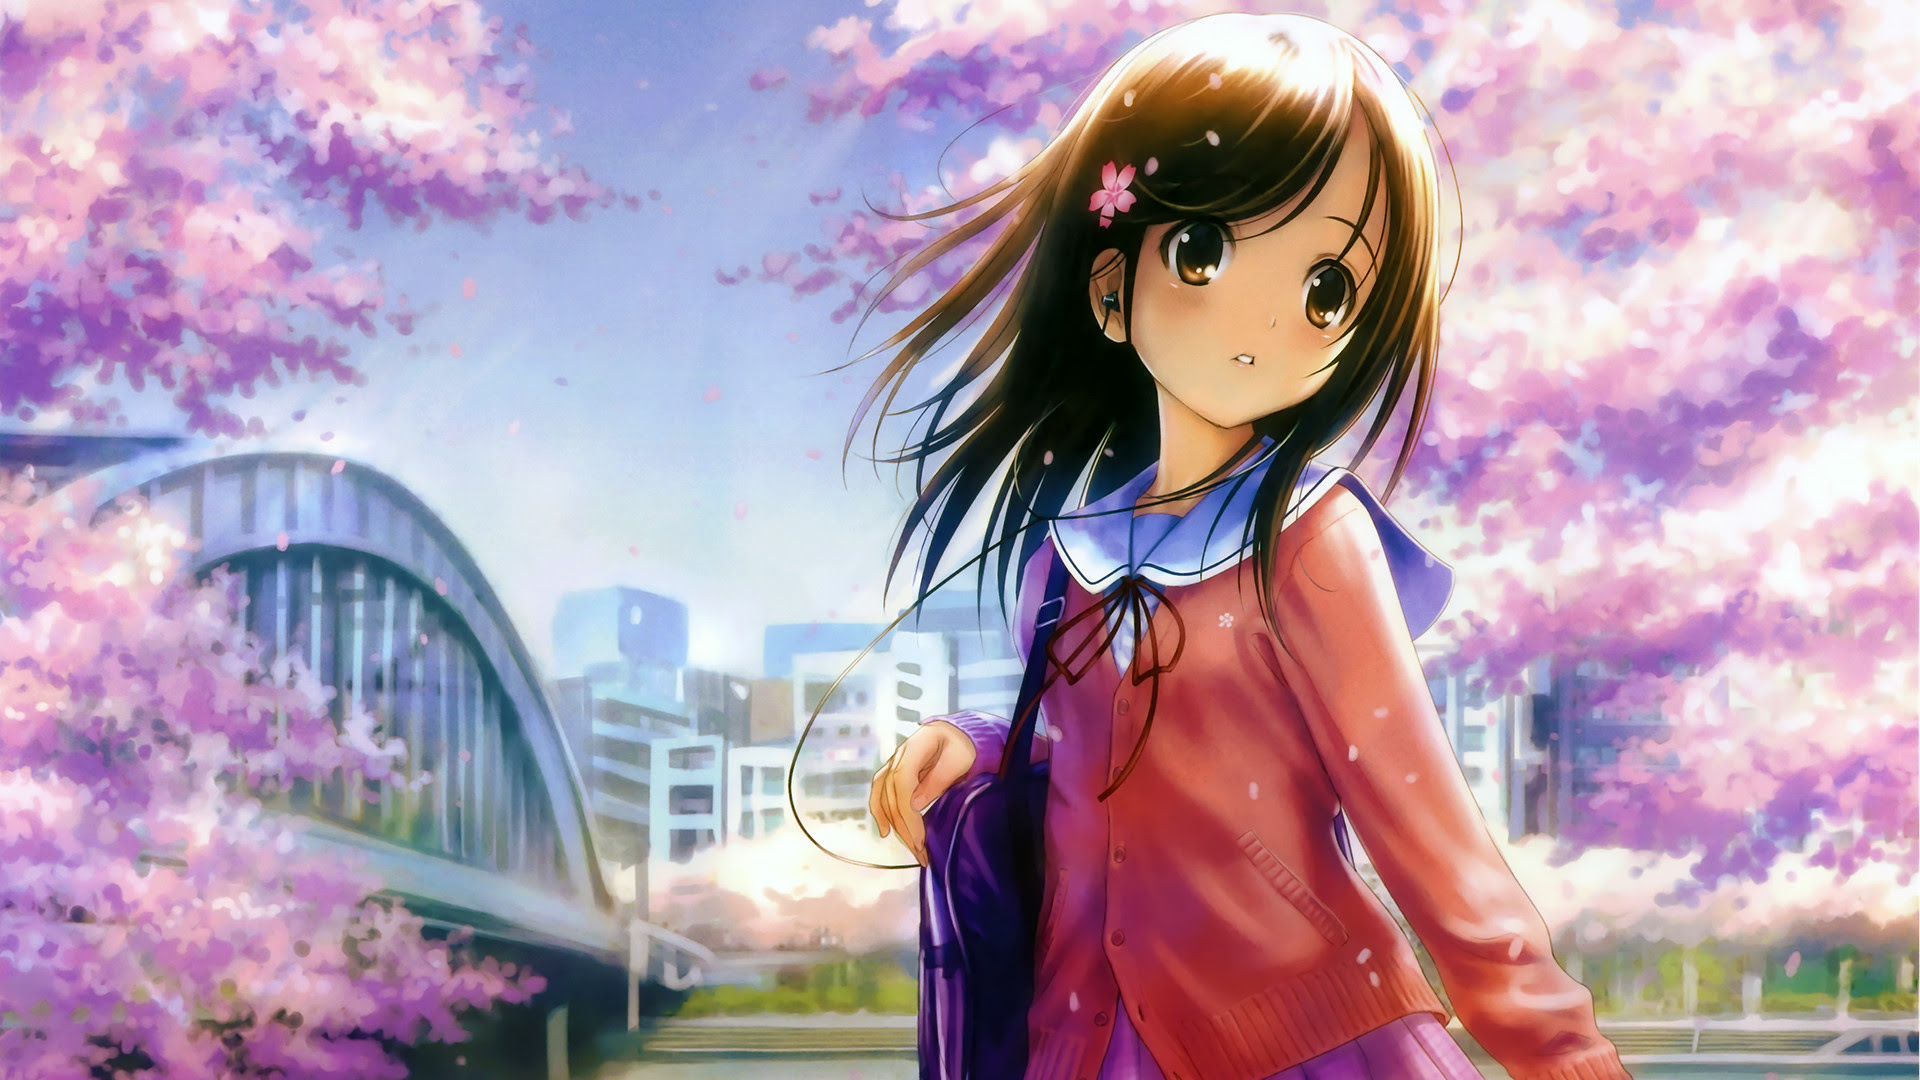 Cute Anime Wallpaper 1920x1080 (72+ images)